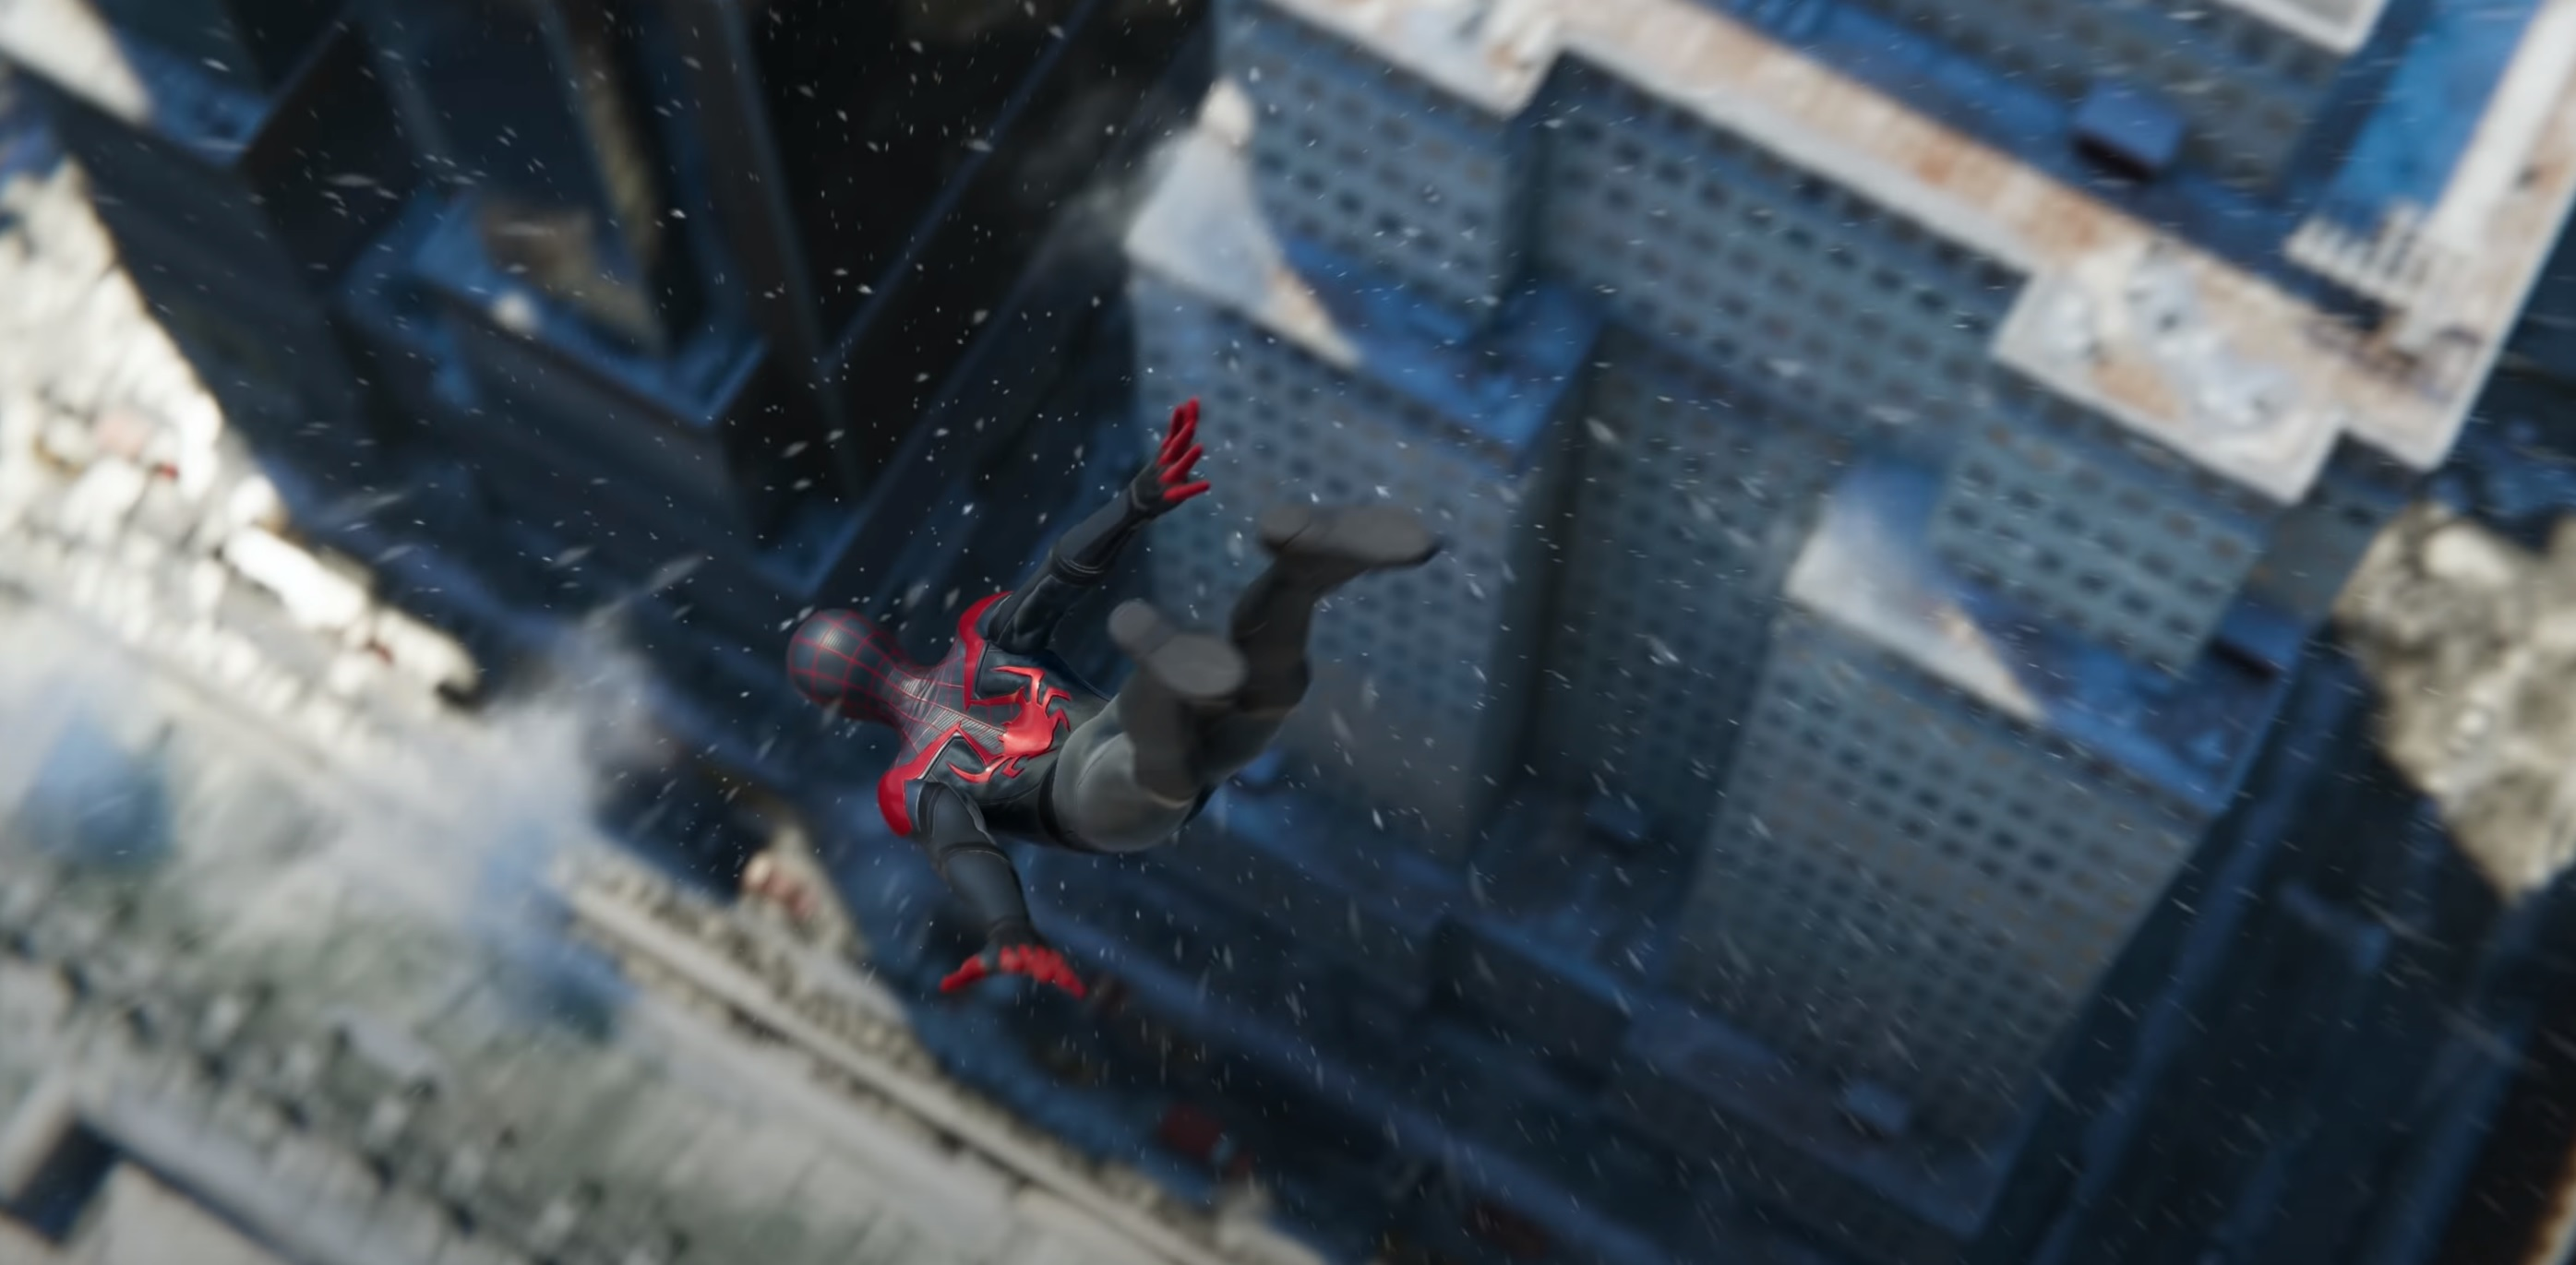 Insomniac's Spider-Man: Miles Morales will have an optional 4K/60FPS performance mode screenshot